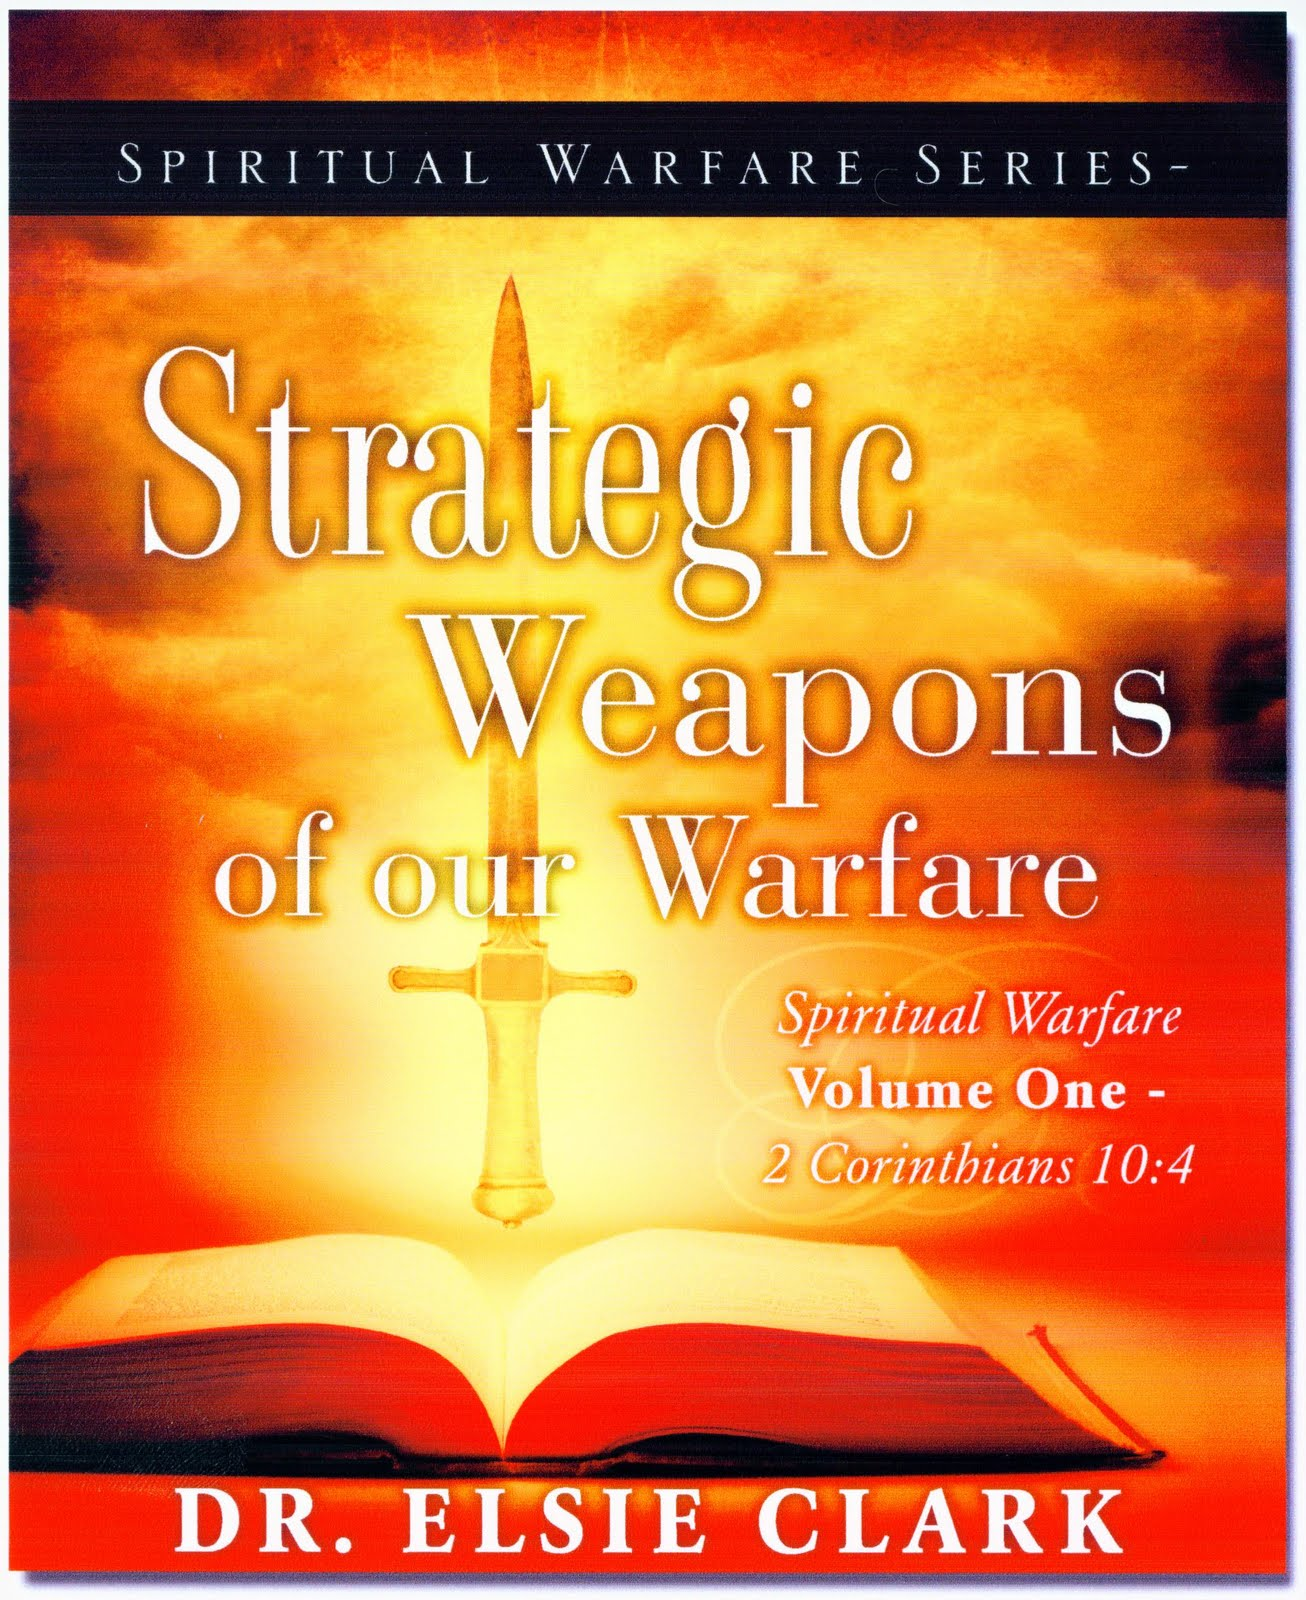 War and Religion; HOW interrelated?